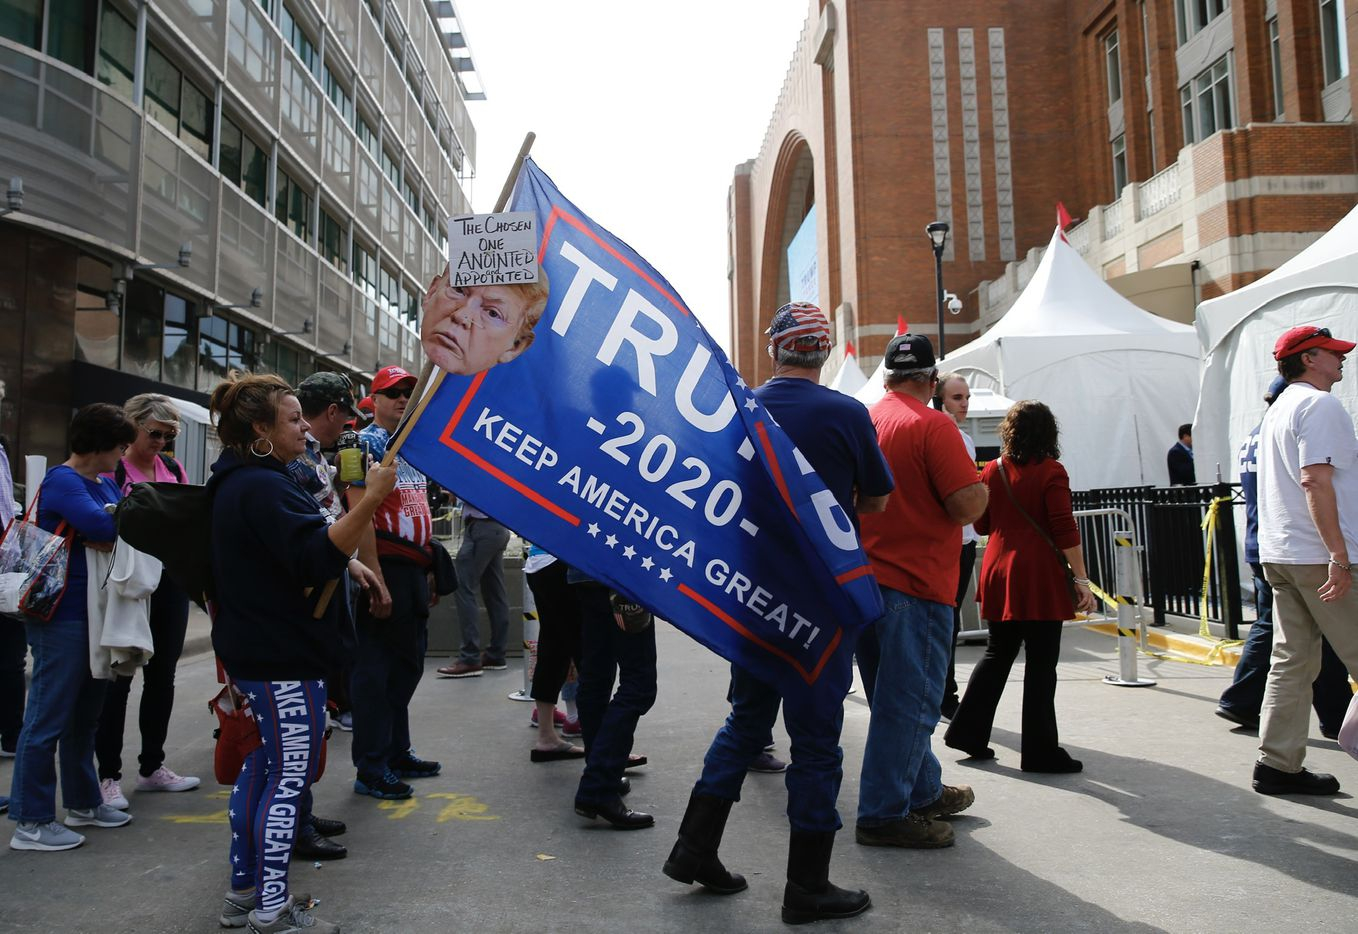 People wait in line for the Keep America Great Rally for President Donald Trump at the American Airlines Center in Dallas, on Thursday, October 17, 2019.